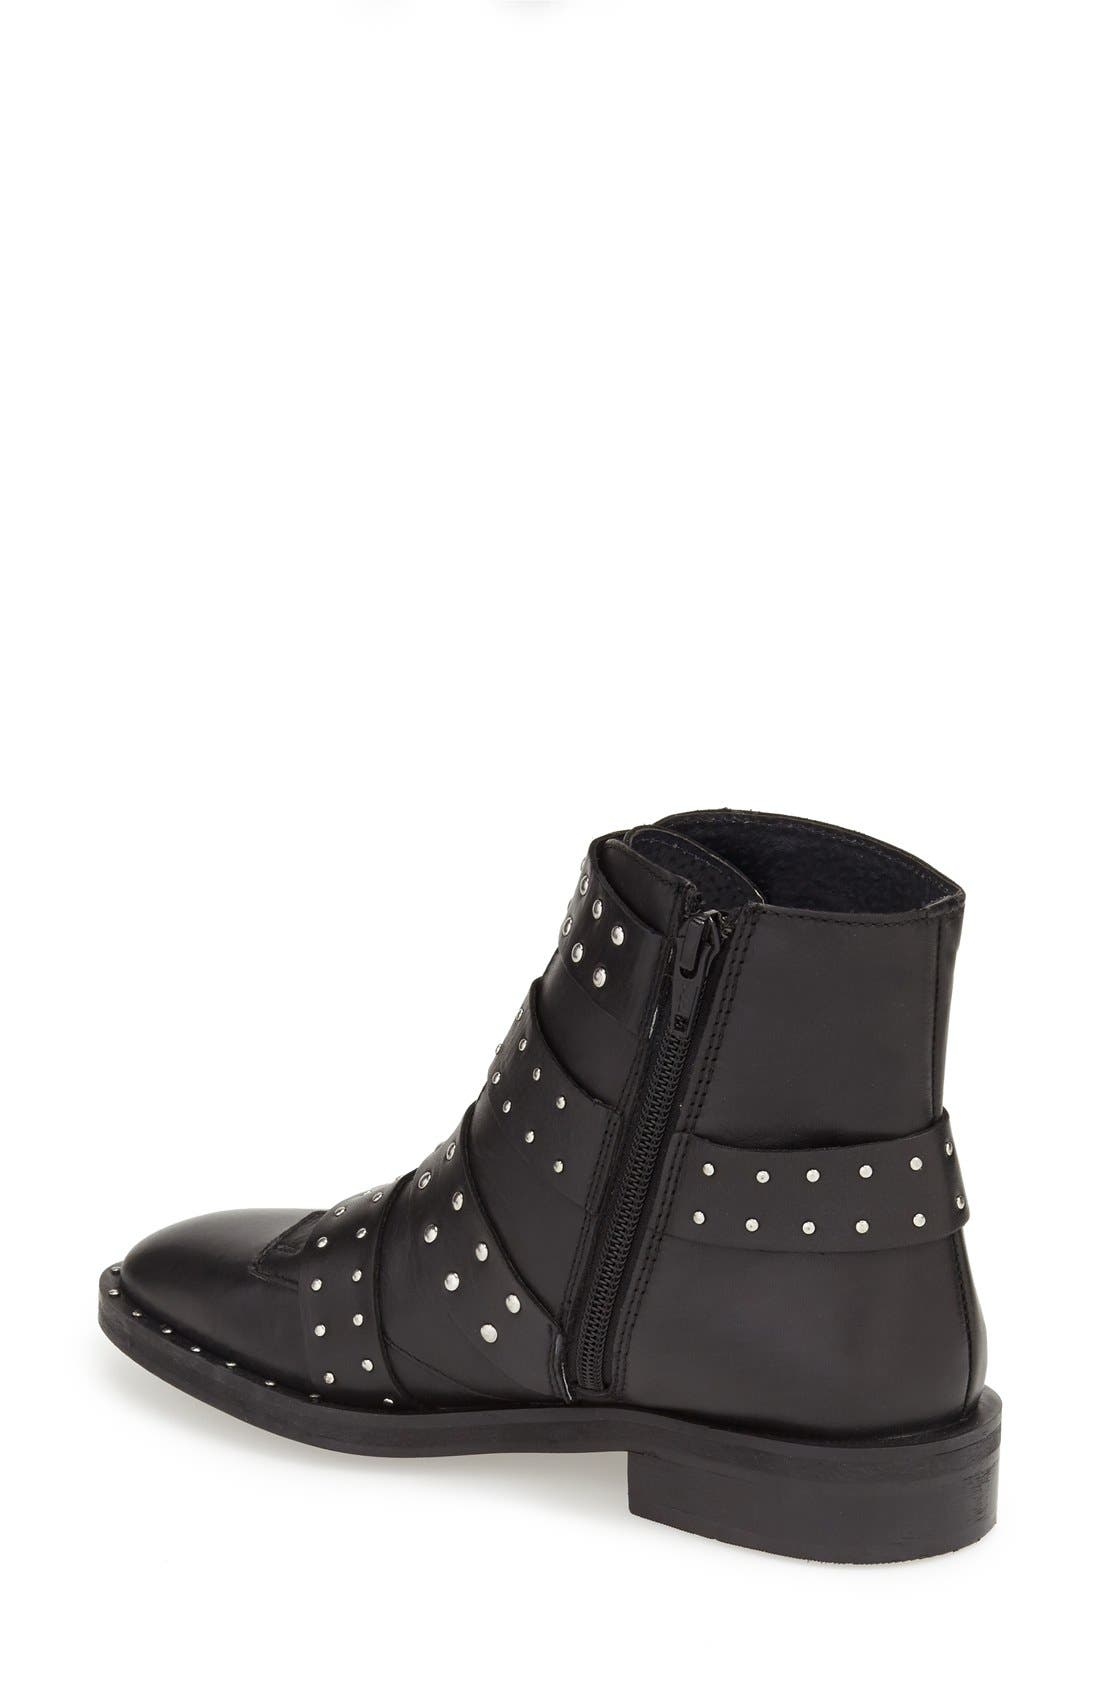 TOPSHOP, 'Amy' Studded Buckle Bootie, Alternate thumbnail 3, color, 001